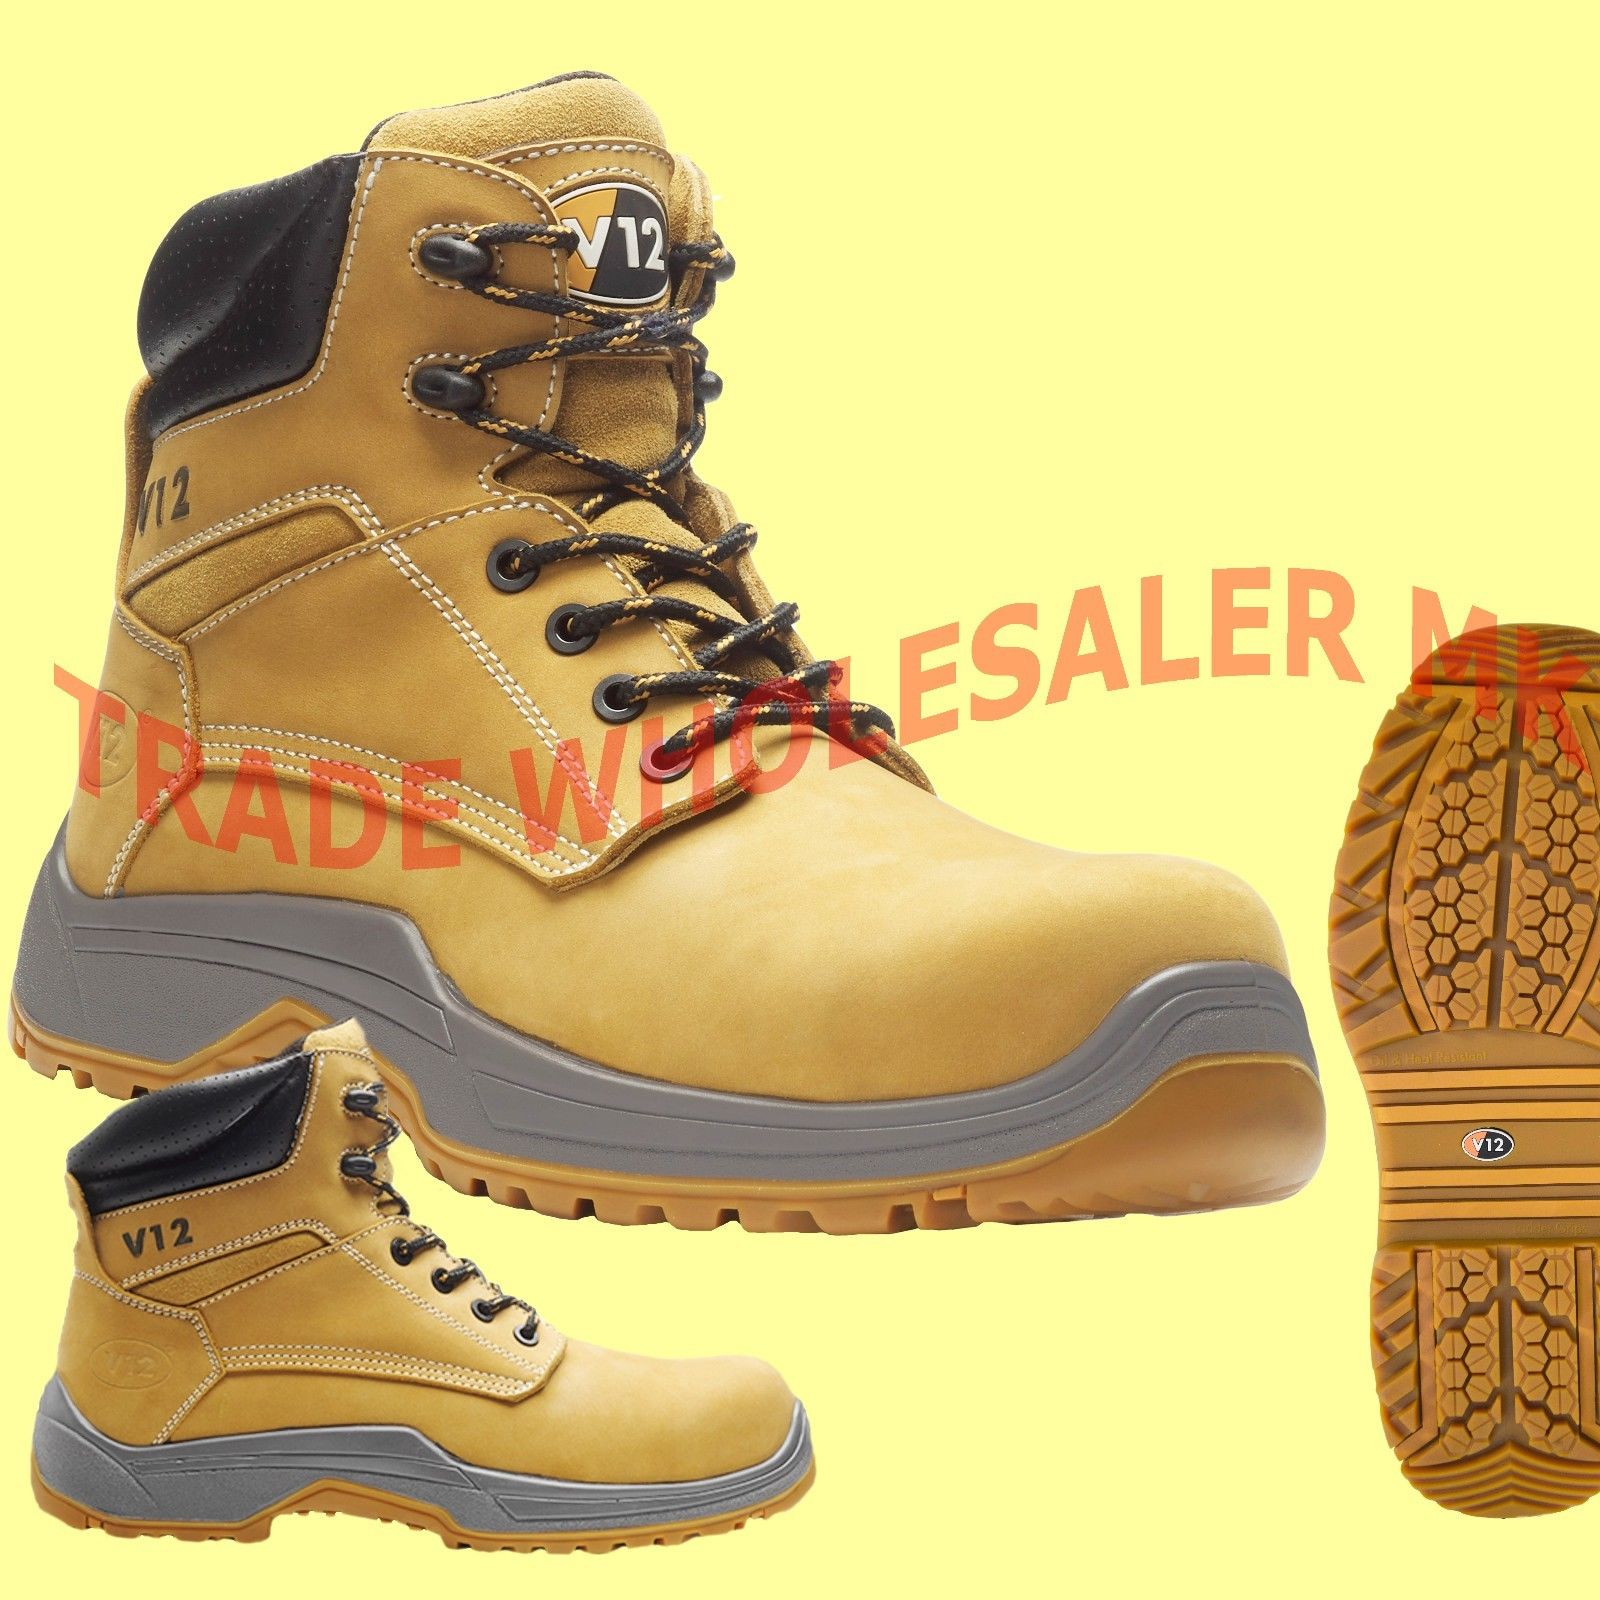 6ac0232fc66 V12 PUMA LEATHER WORK COMPOSITE TOE CAP SAFETY BOOTS STEEL MIDSOLE